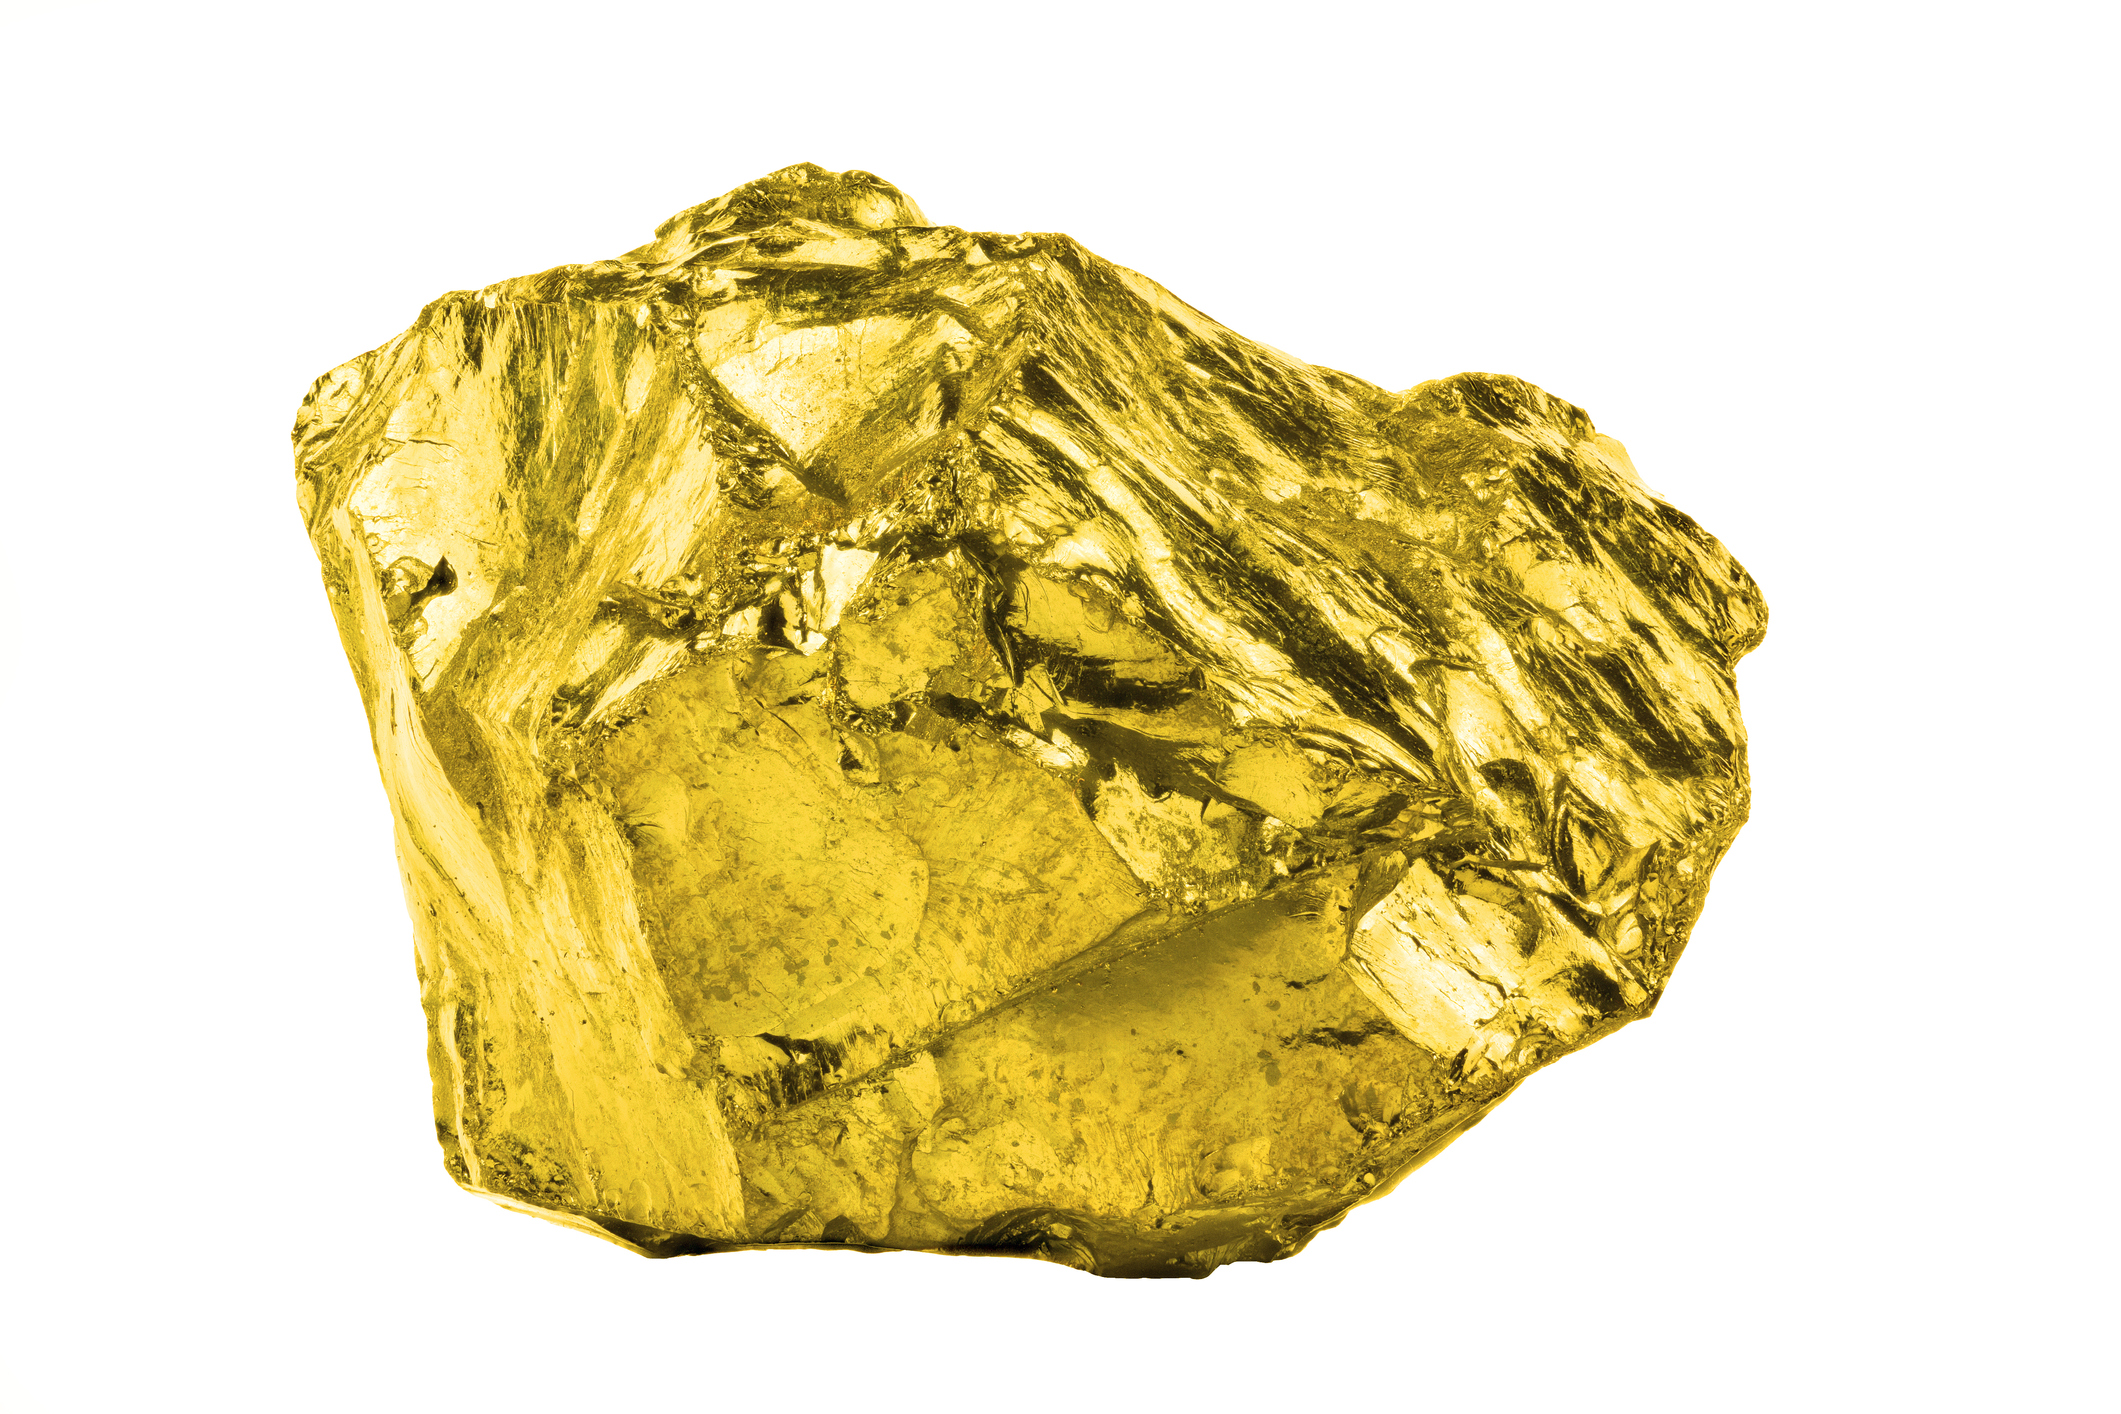 /site/assets/files/1253/gold_nugget.jpg